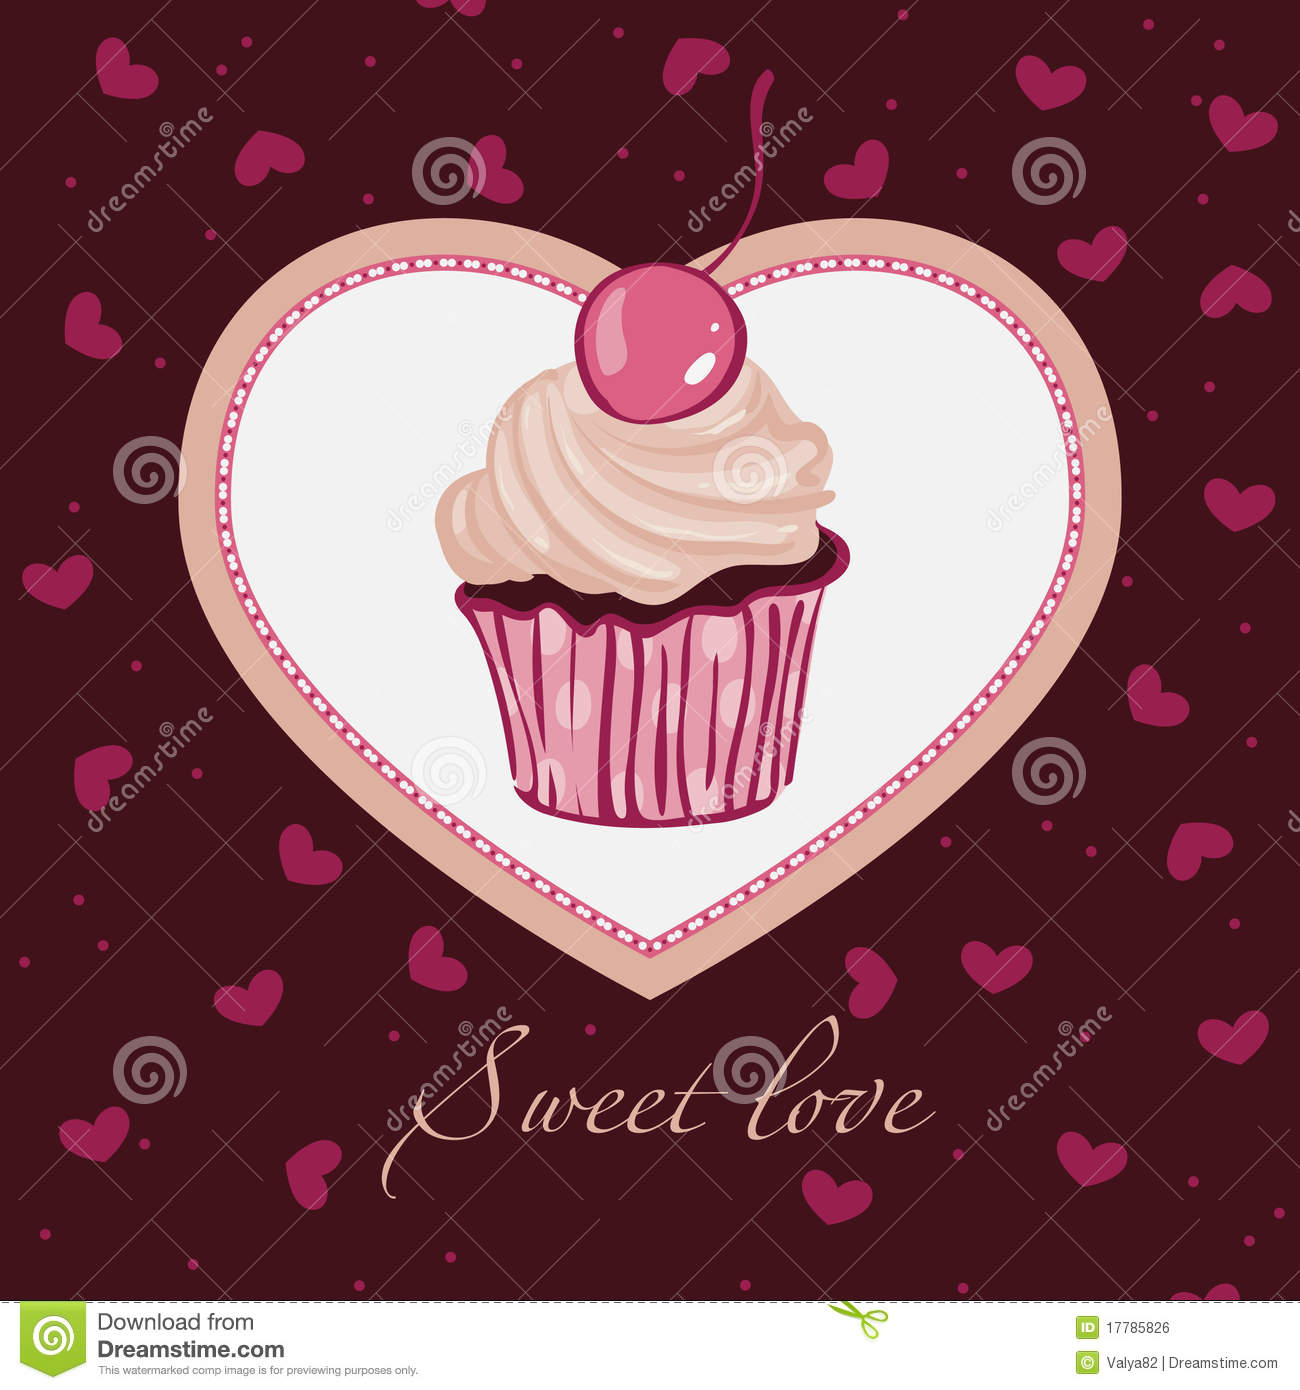 Sweet Love Template Design For Card Stock Vector